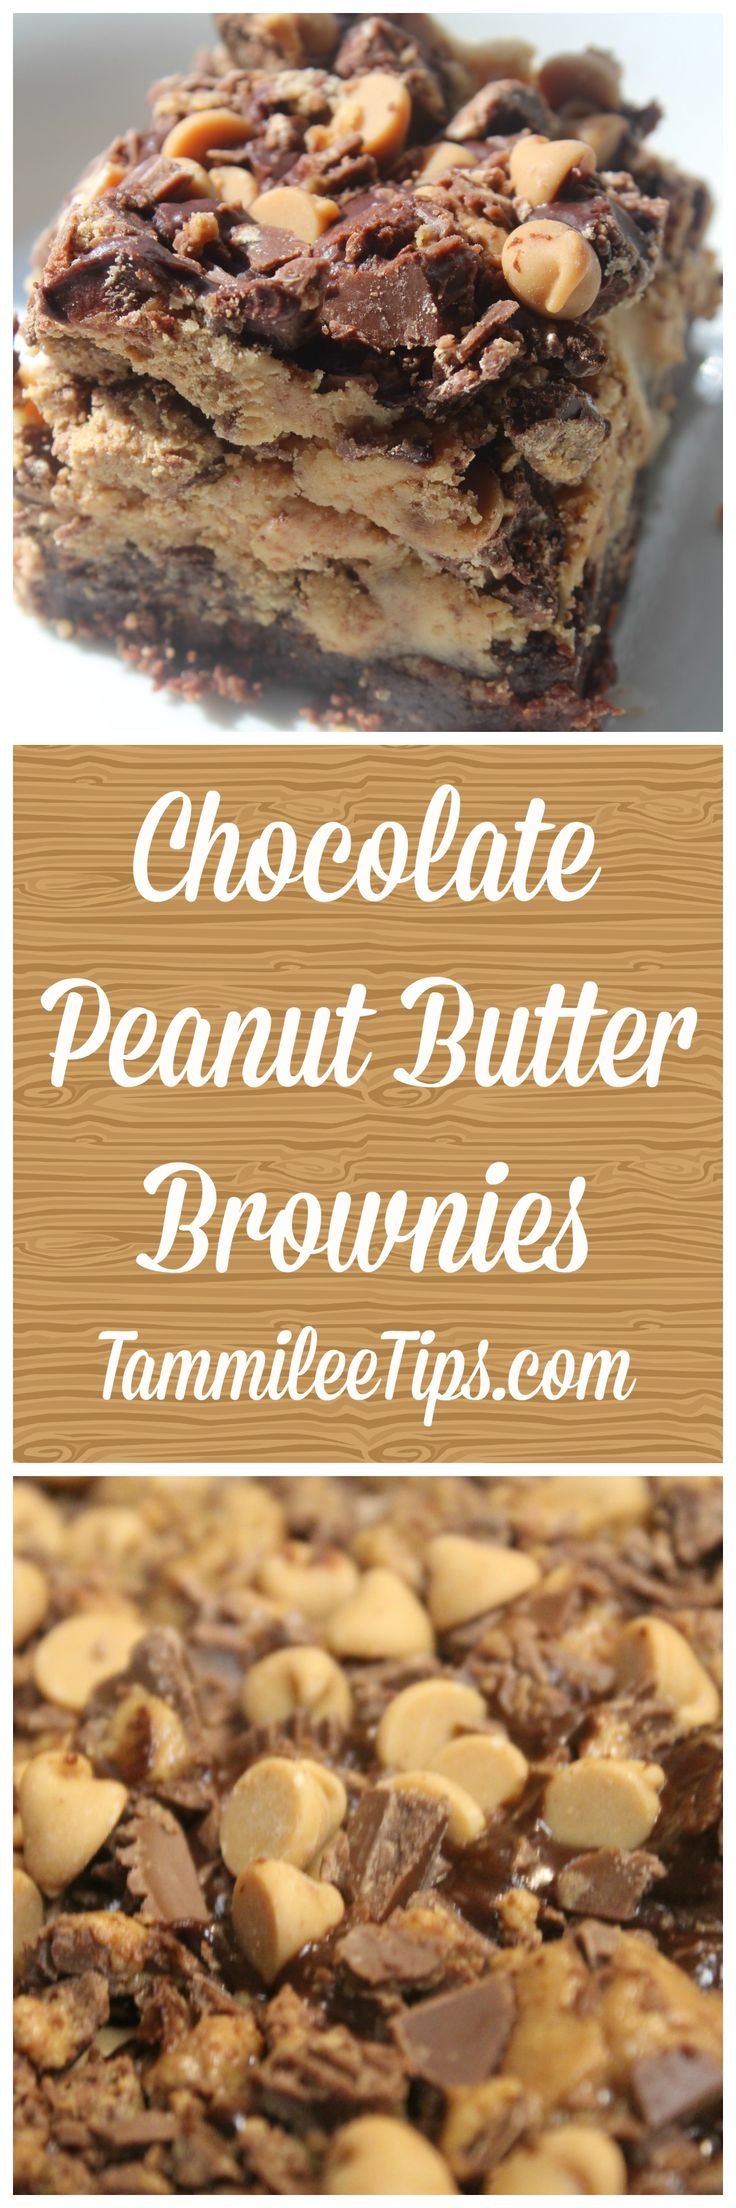 Easy Chocolate Peanut Butter Brownies Recipe! The perfect homemade sweet treat snack the entire family will love!